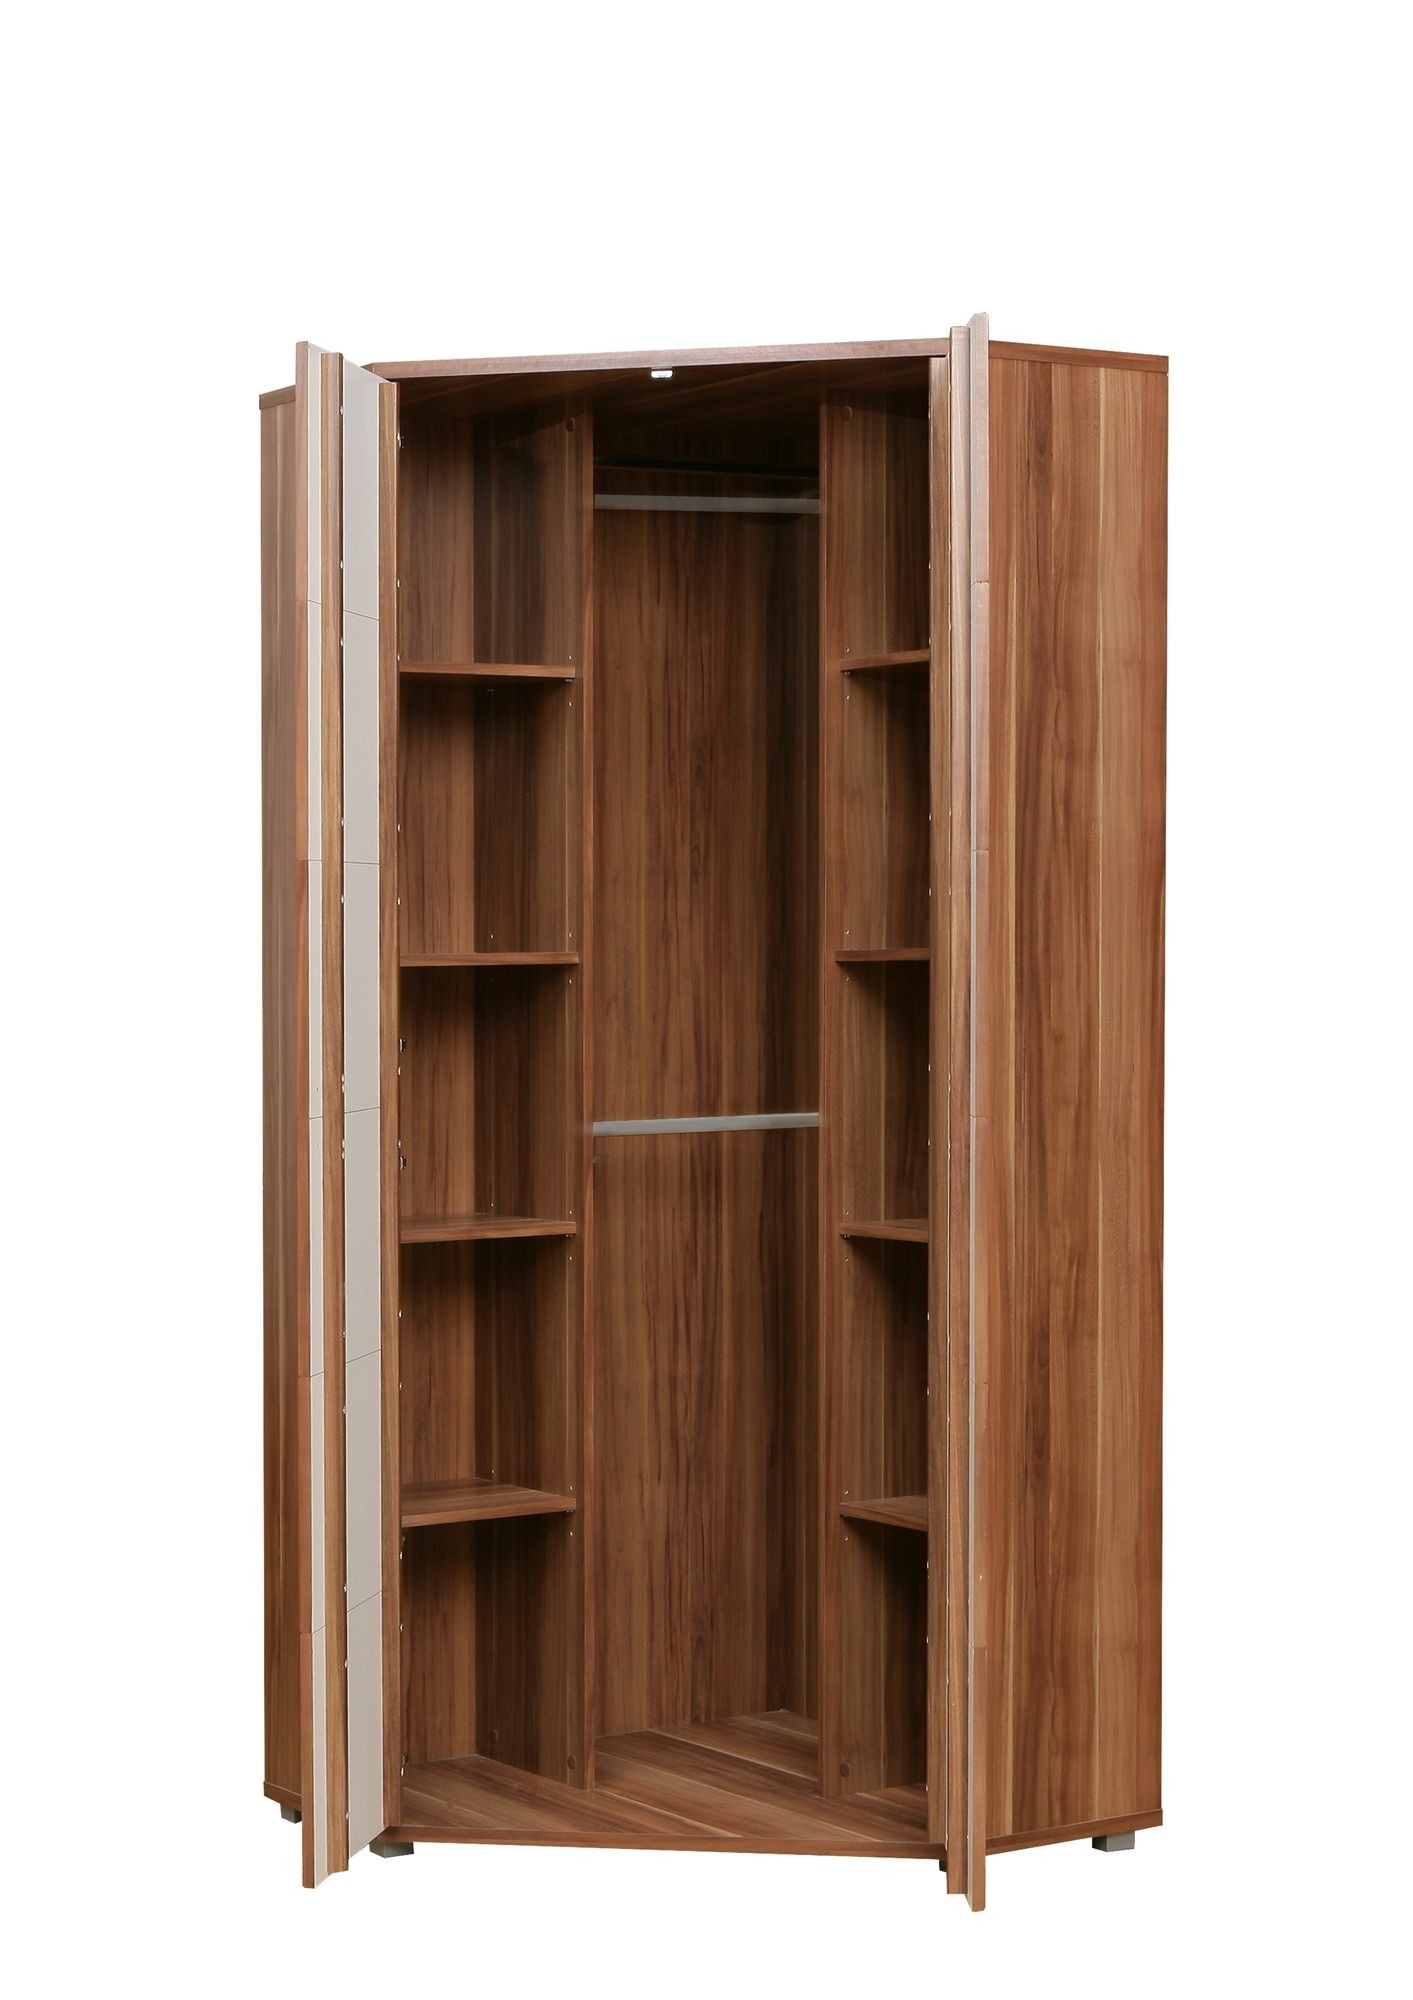 Awesome Corner Armoire Save Big On Need A Corner Bedroom Armoire